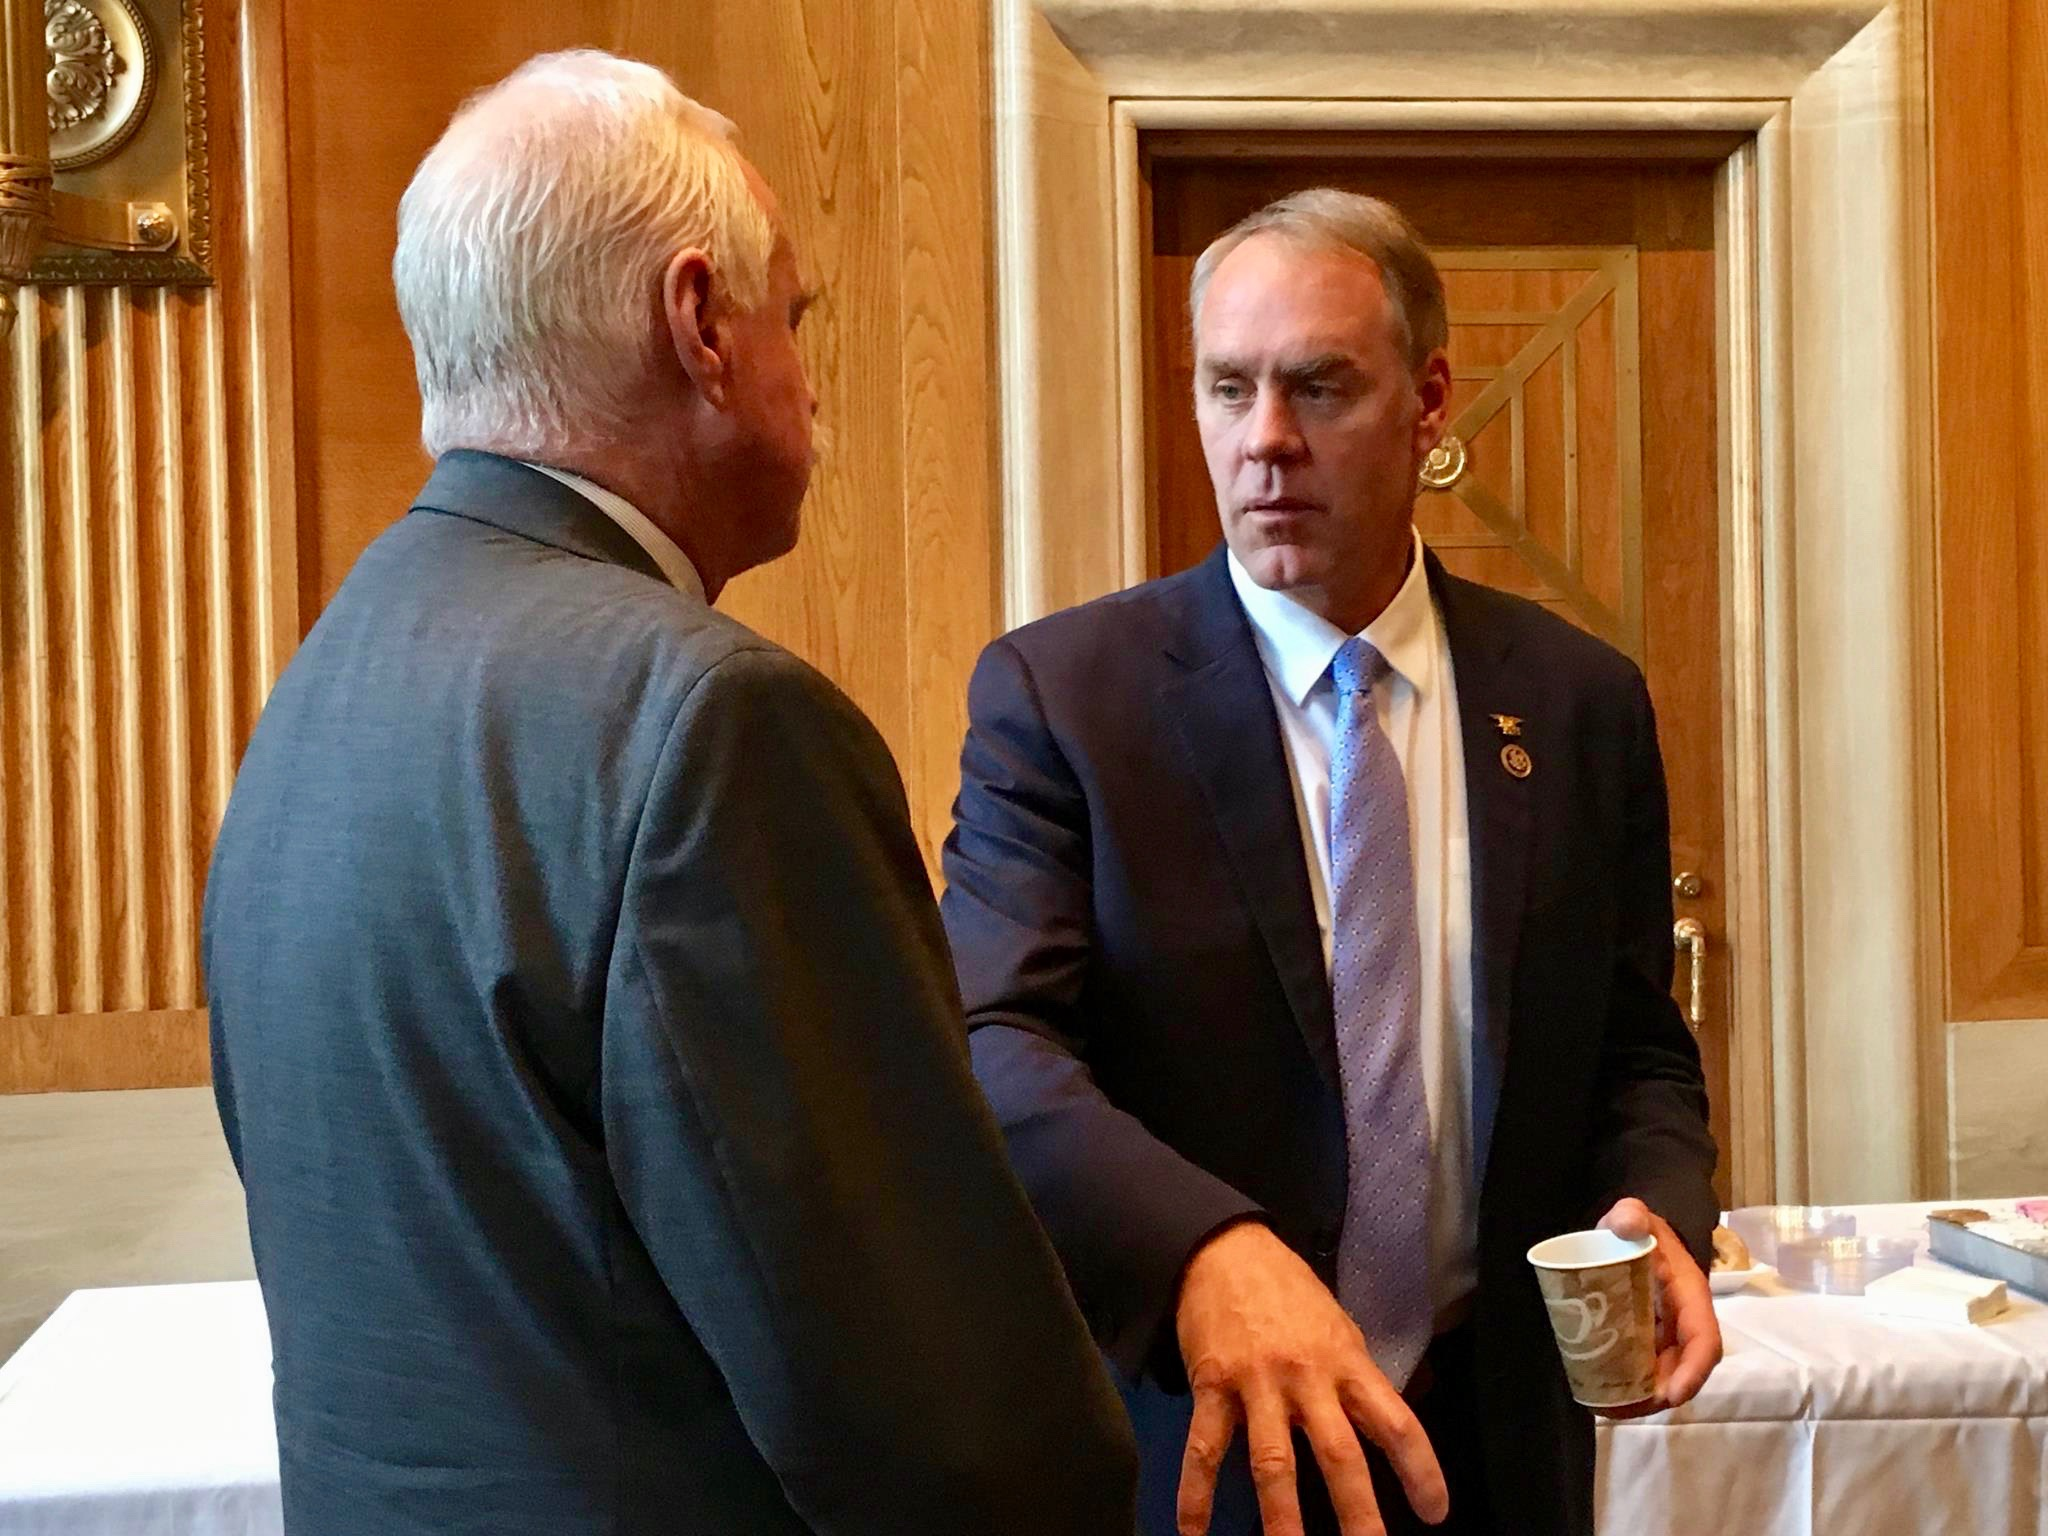 Senate finally ready to consider nomination of Ryan Zinke as Interior Secretary